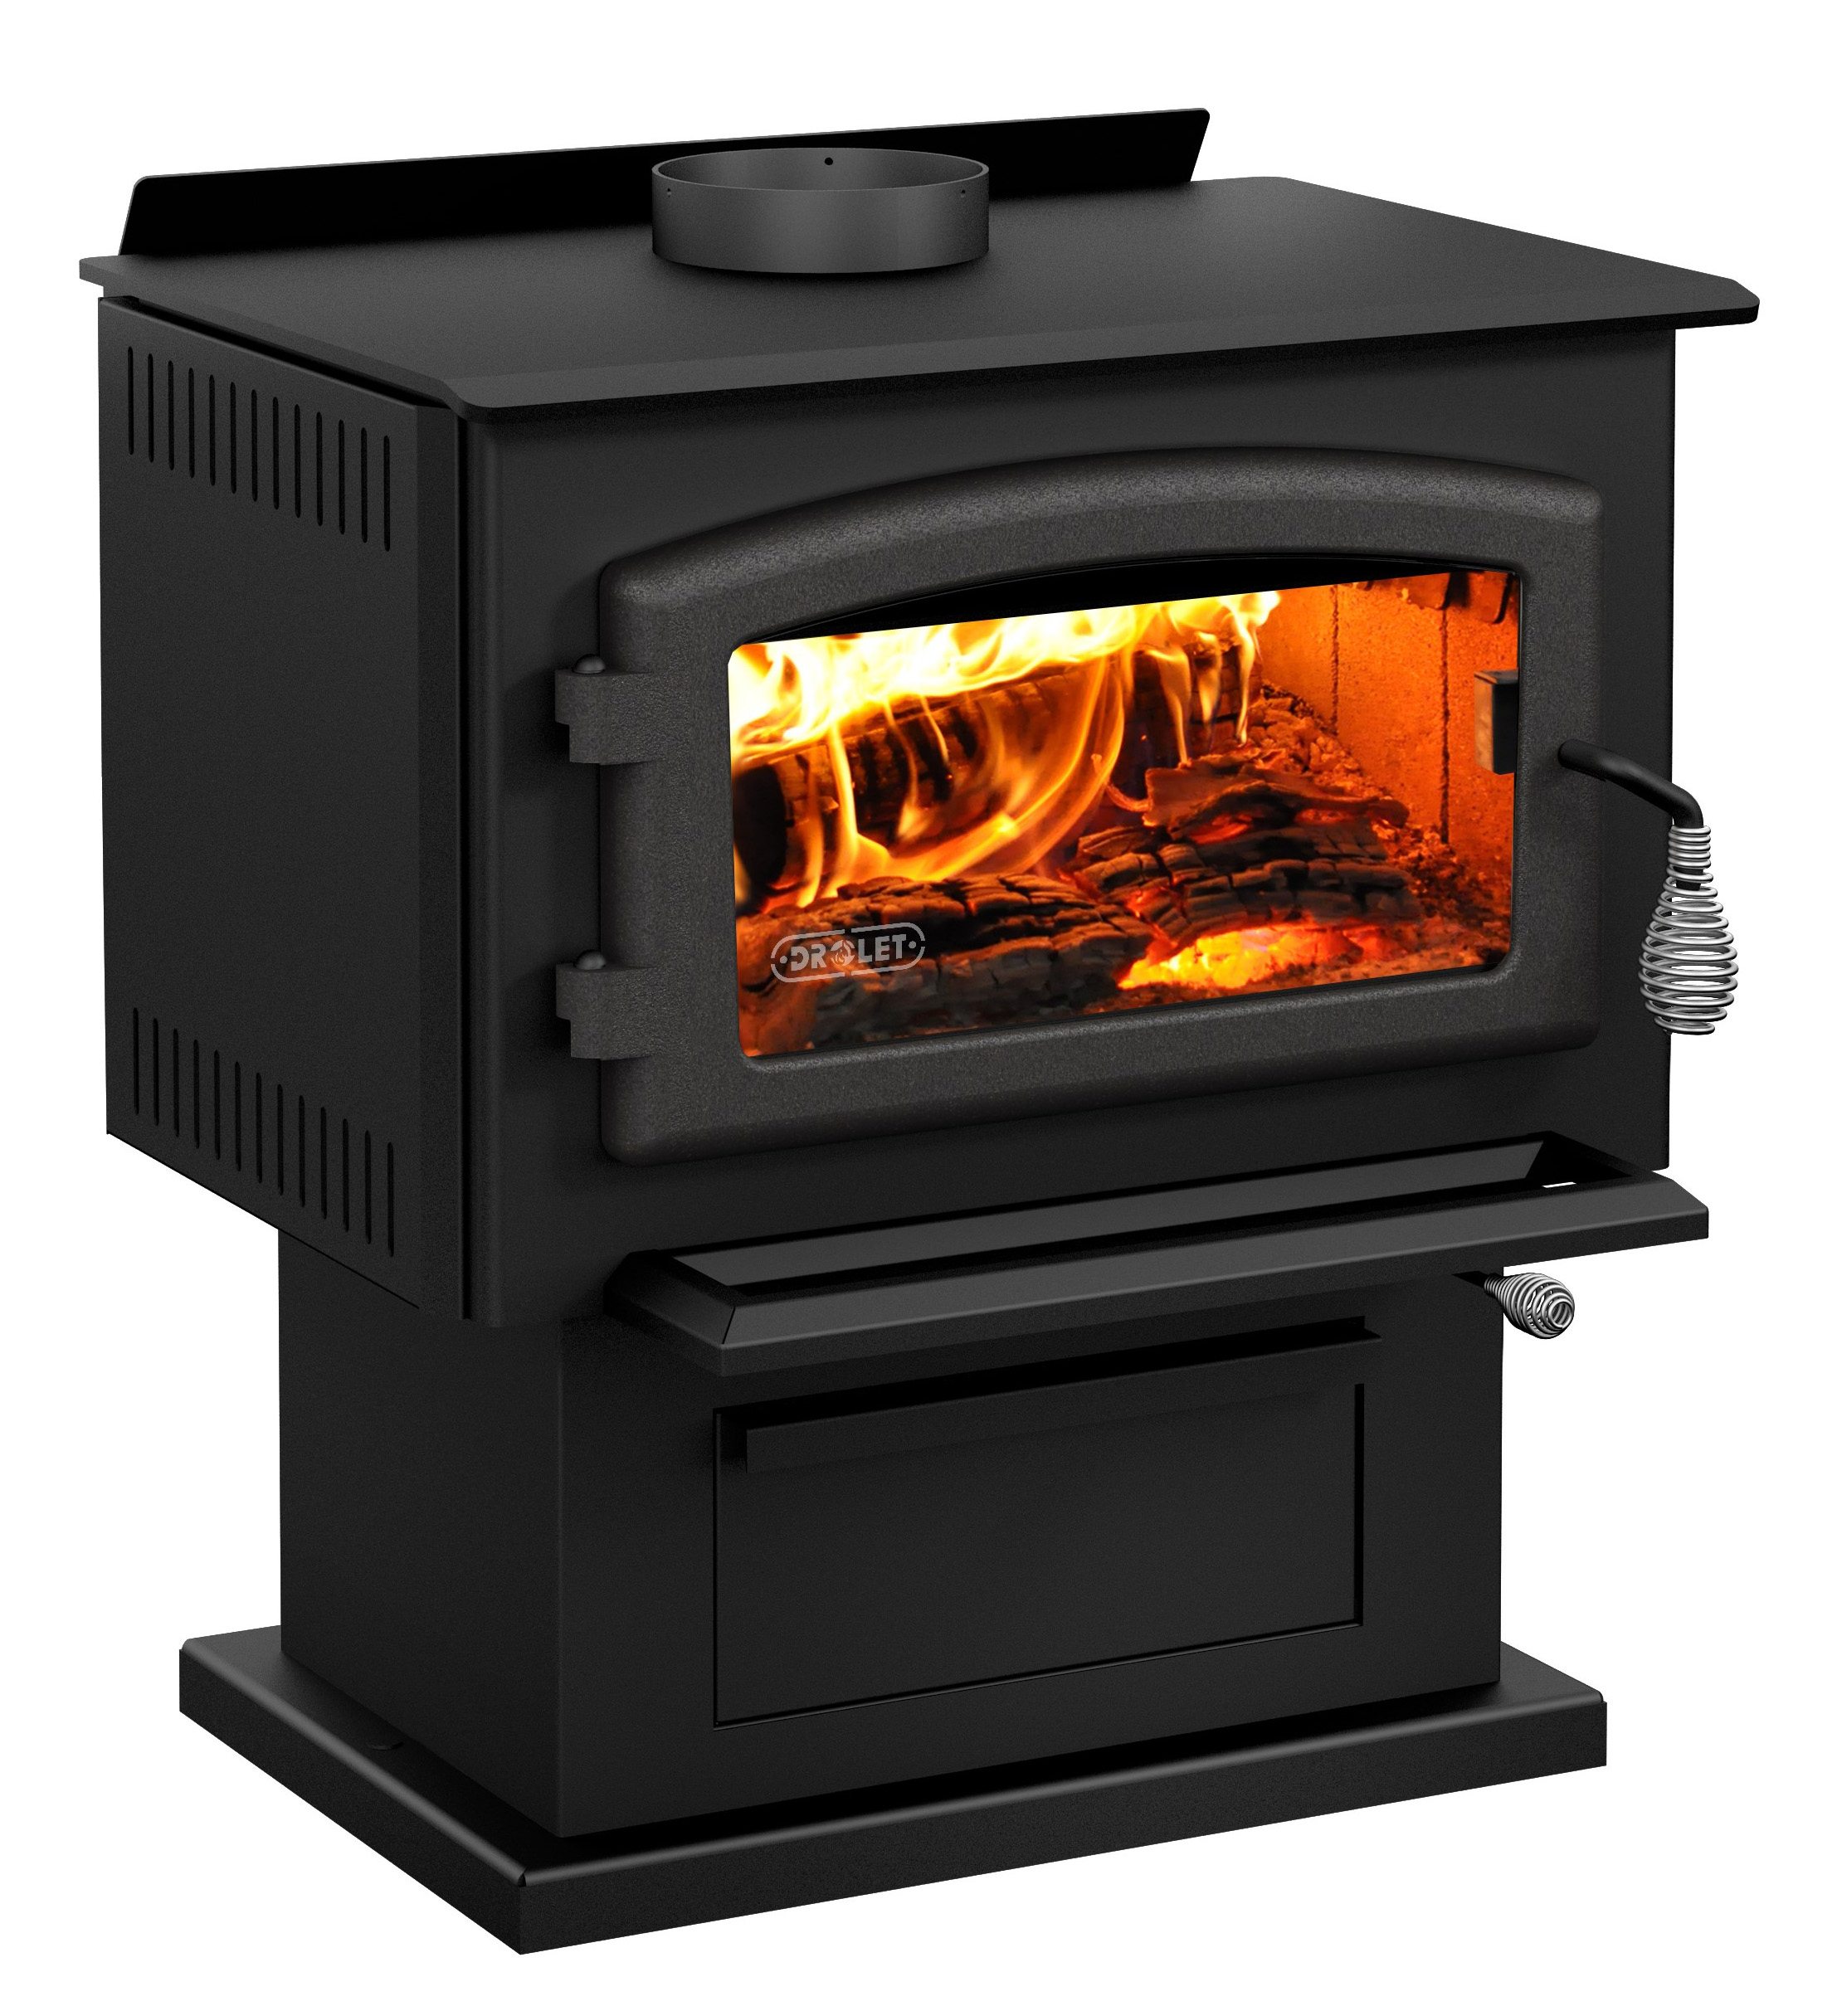 Blackcomb High Efficiency Wood Stove